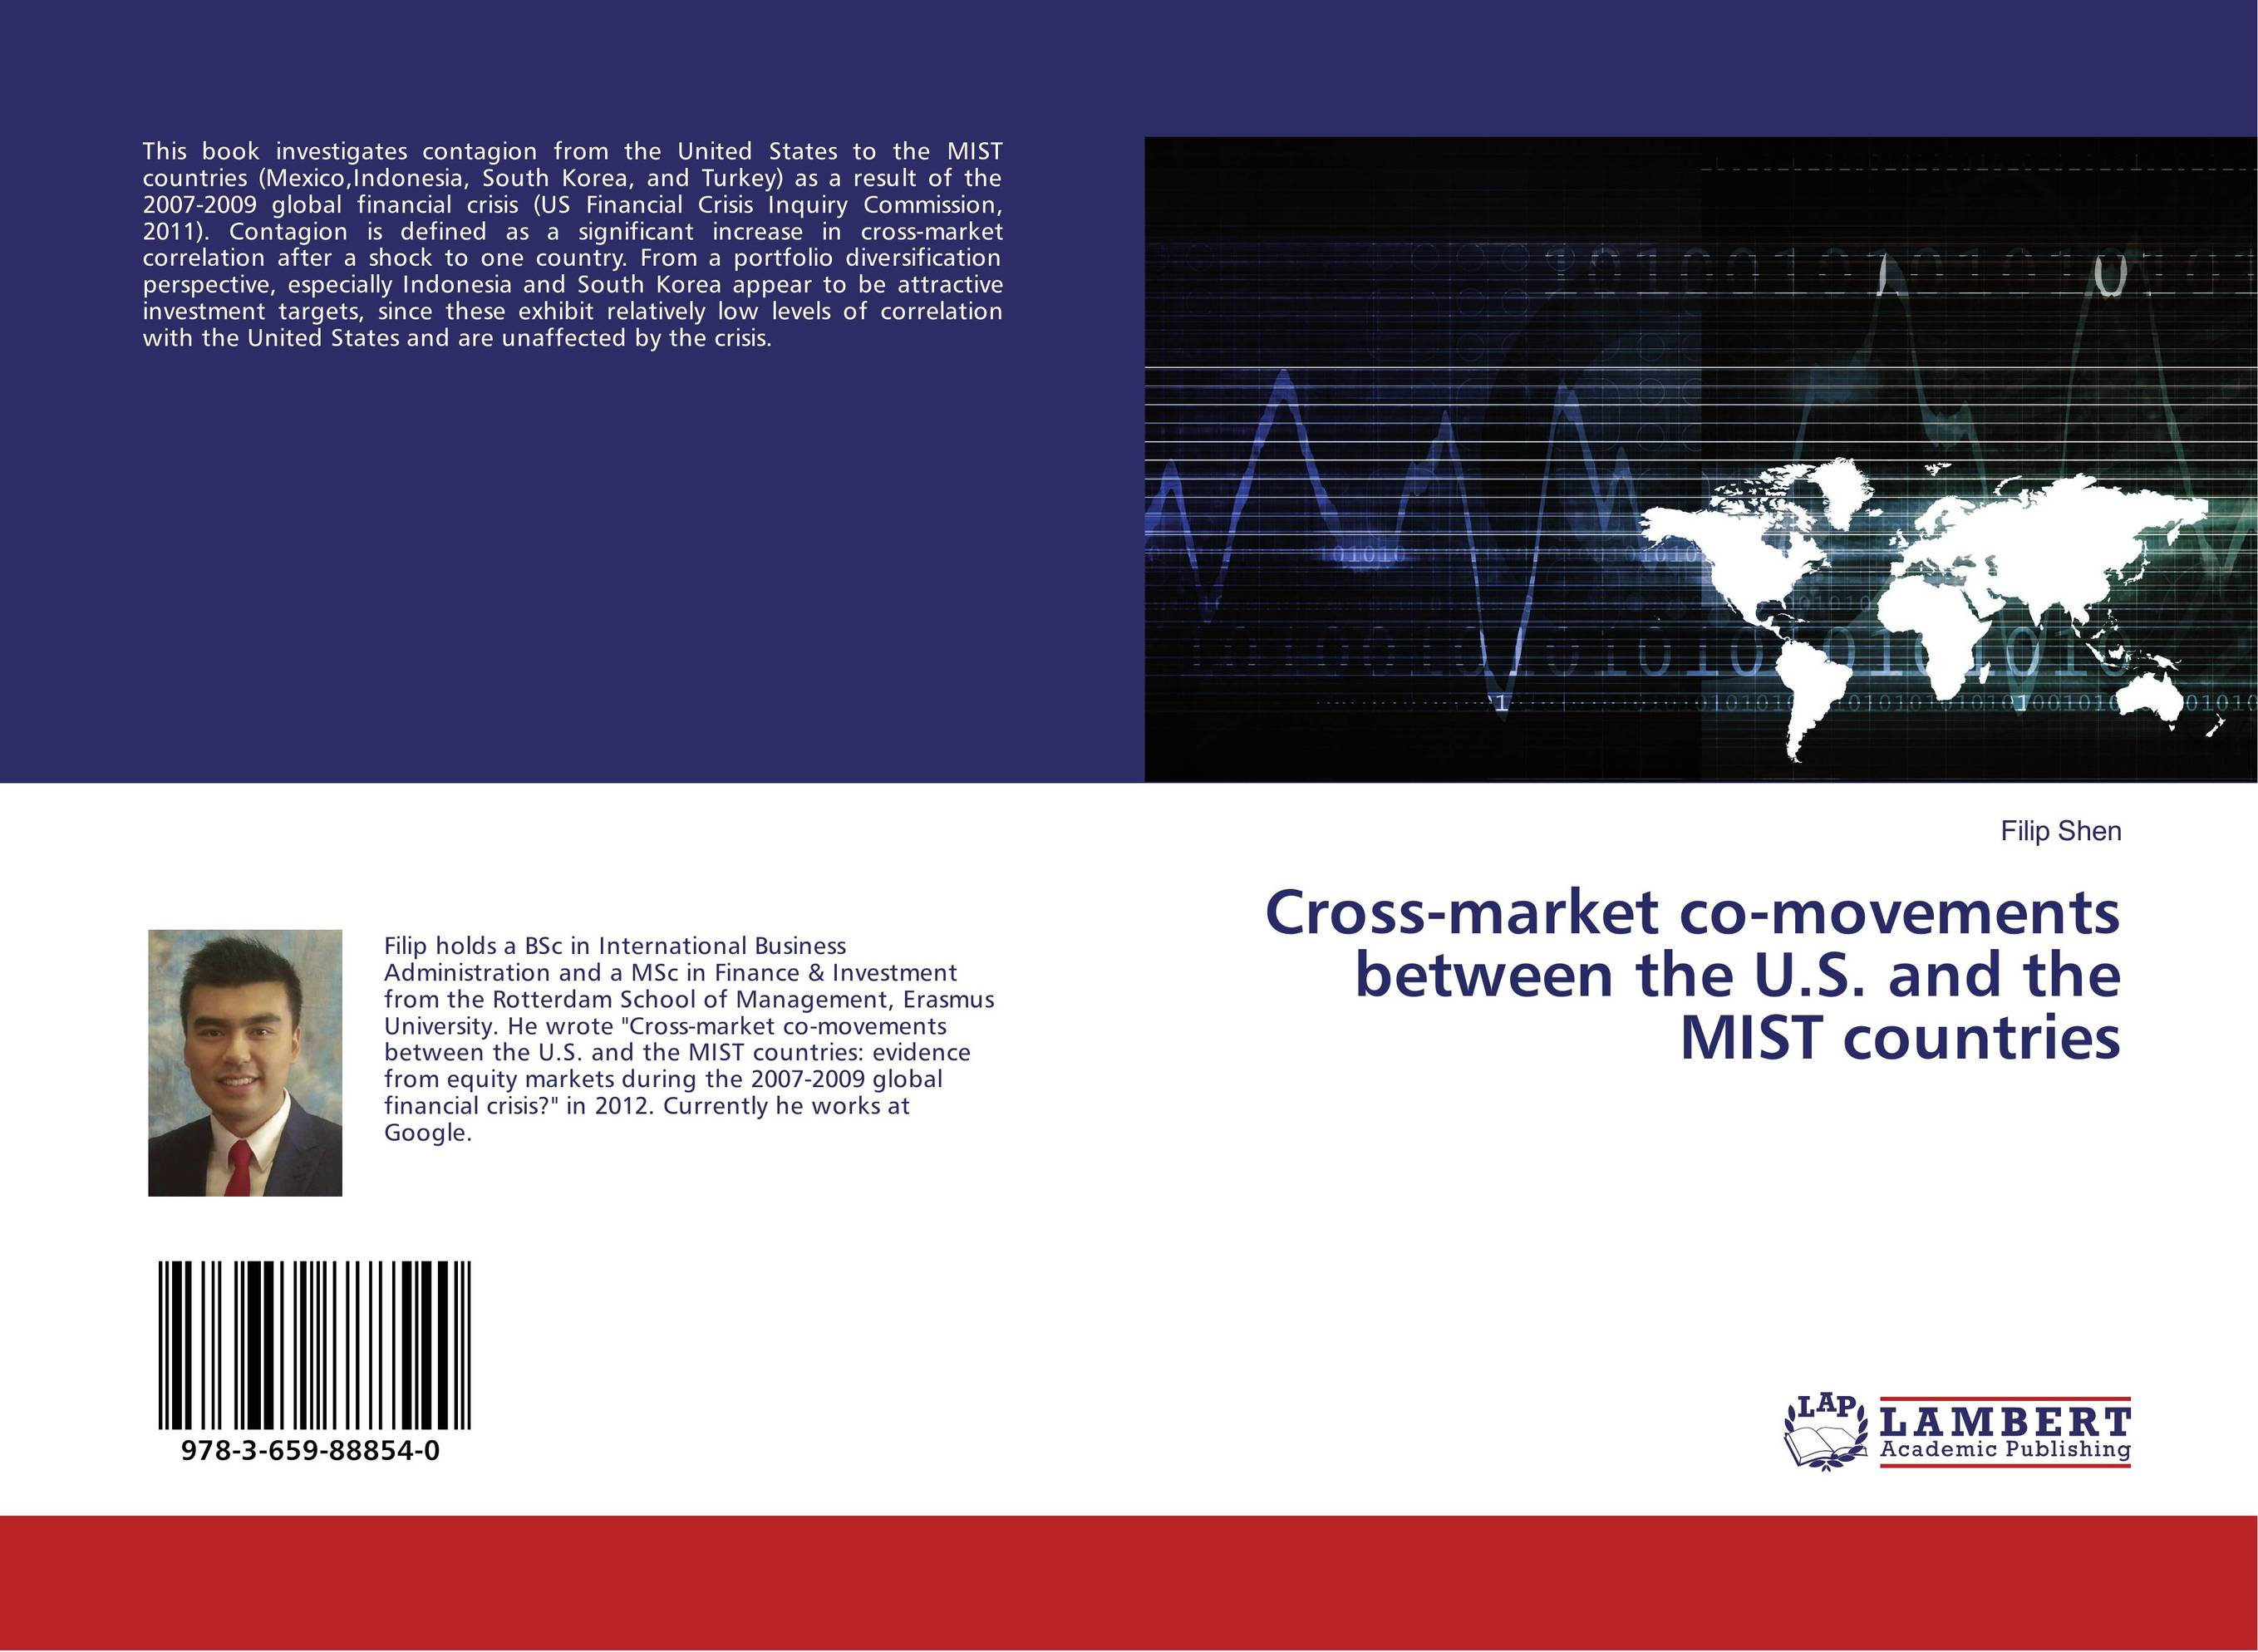 Cross-market co-movements between the U.S. and the MIST countries united as one lorien legacies book 7